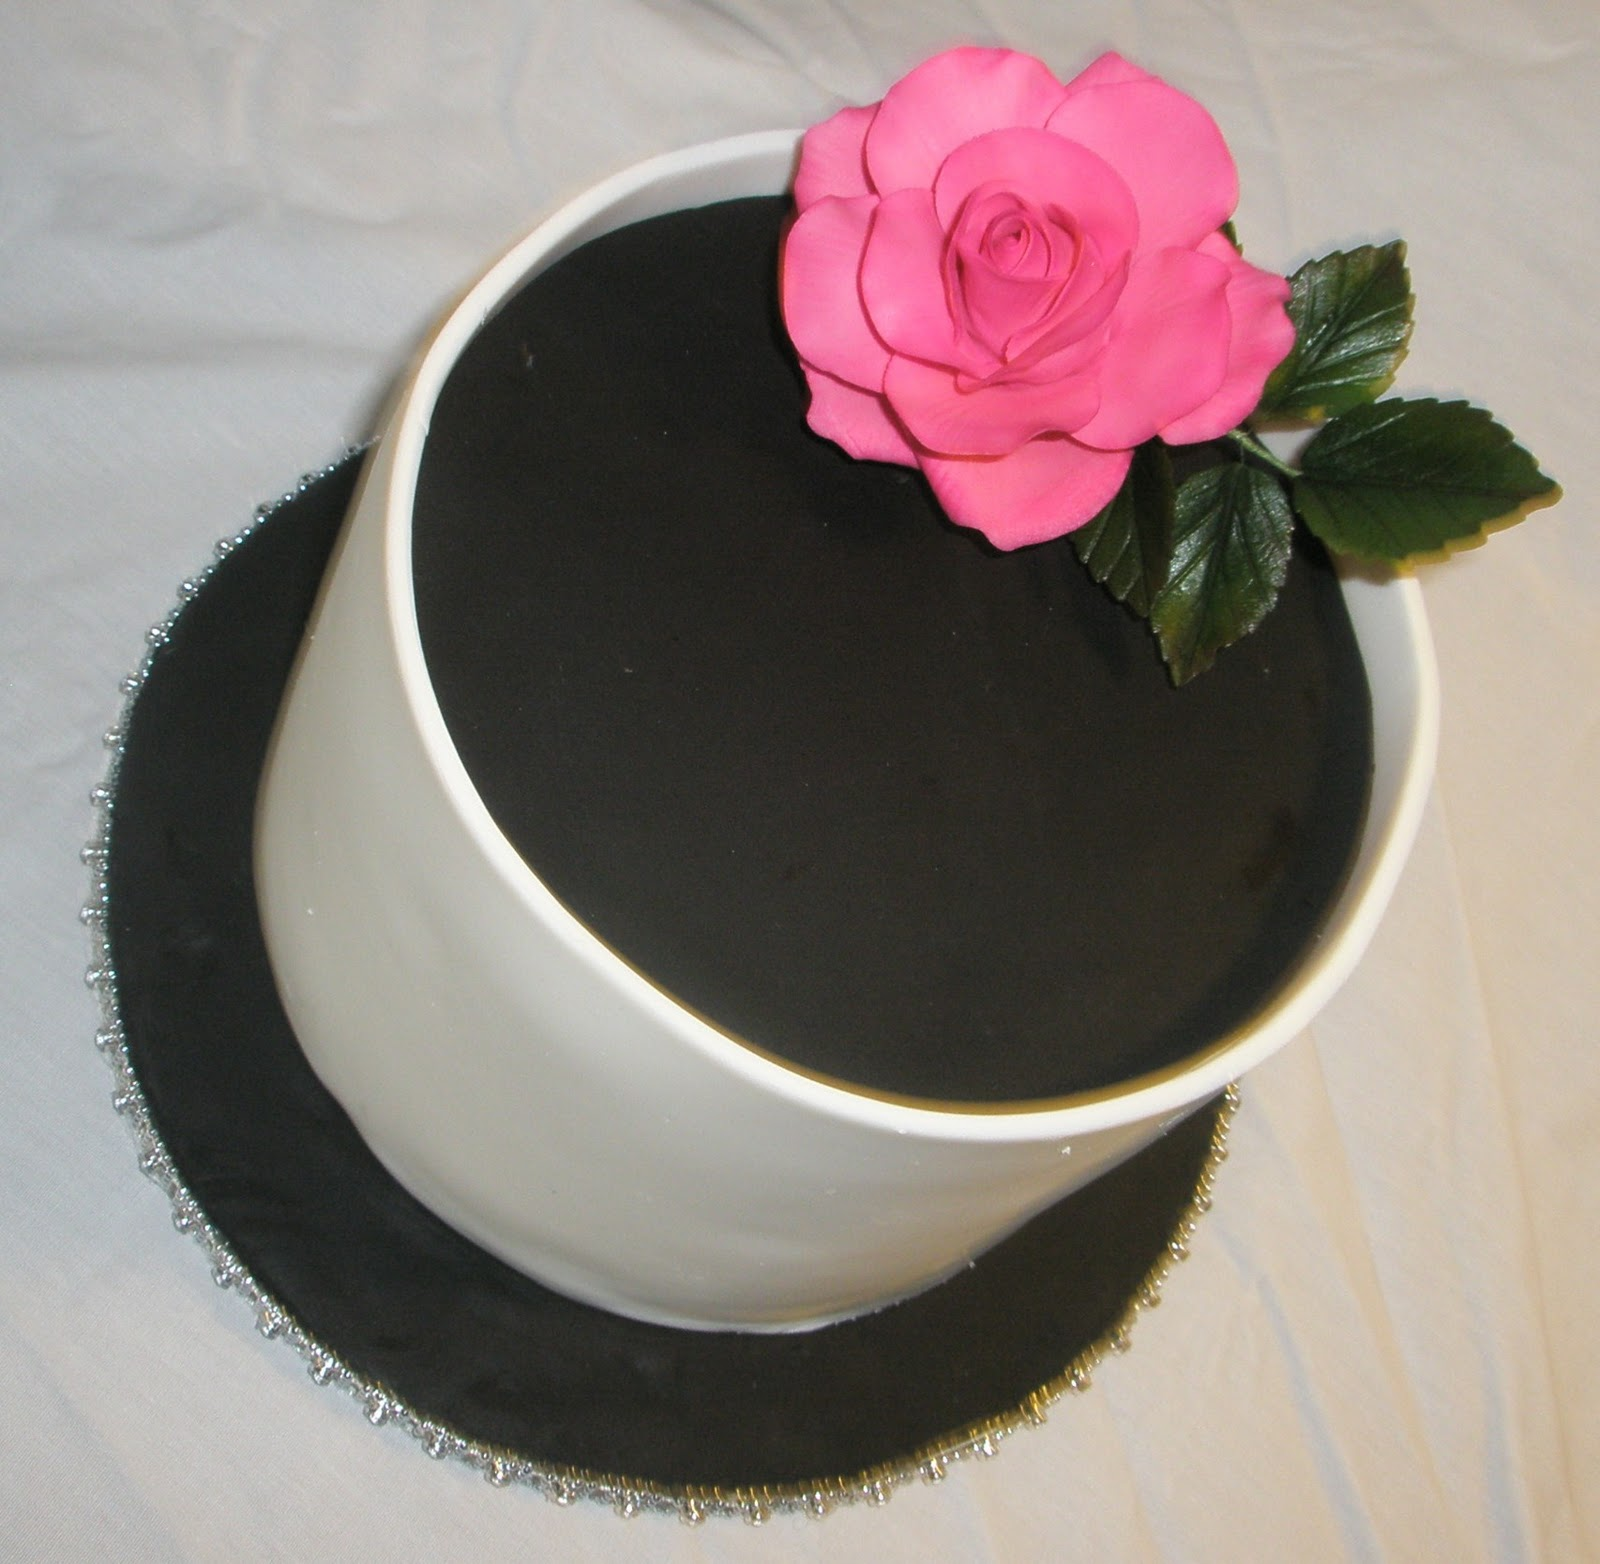 Cake Boss Black and White Wedding Cakes